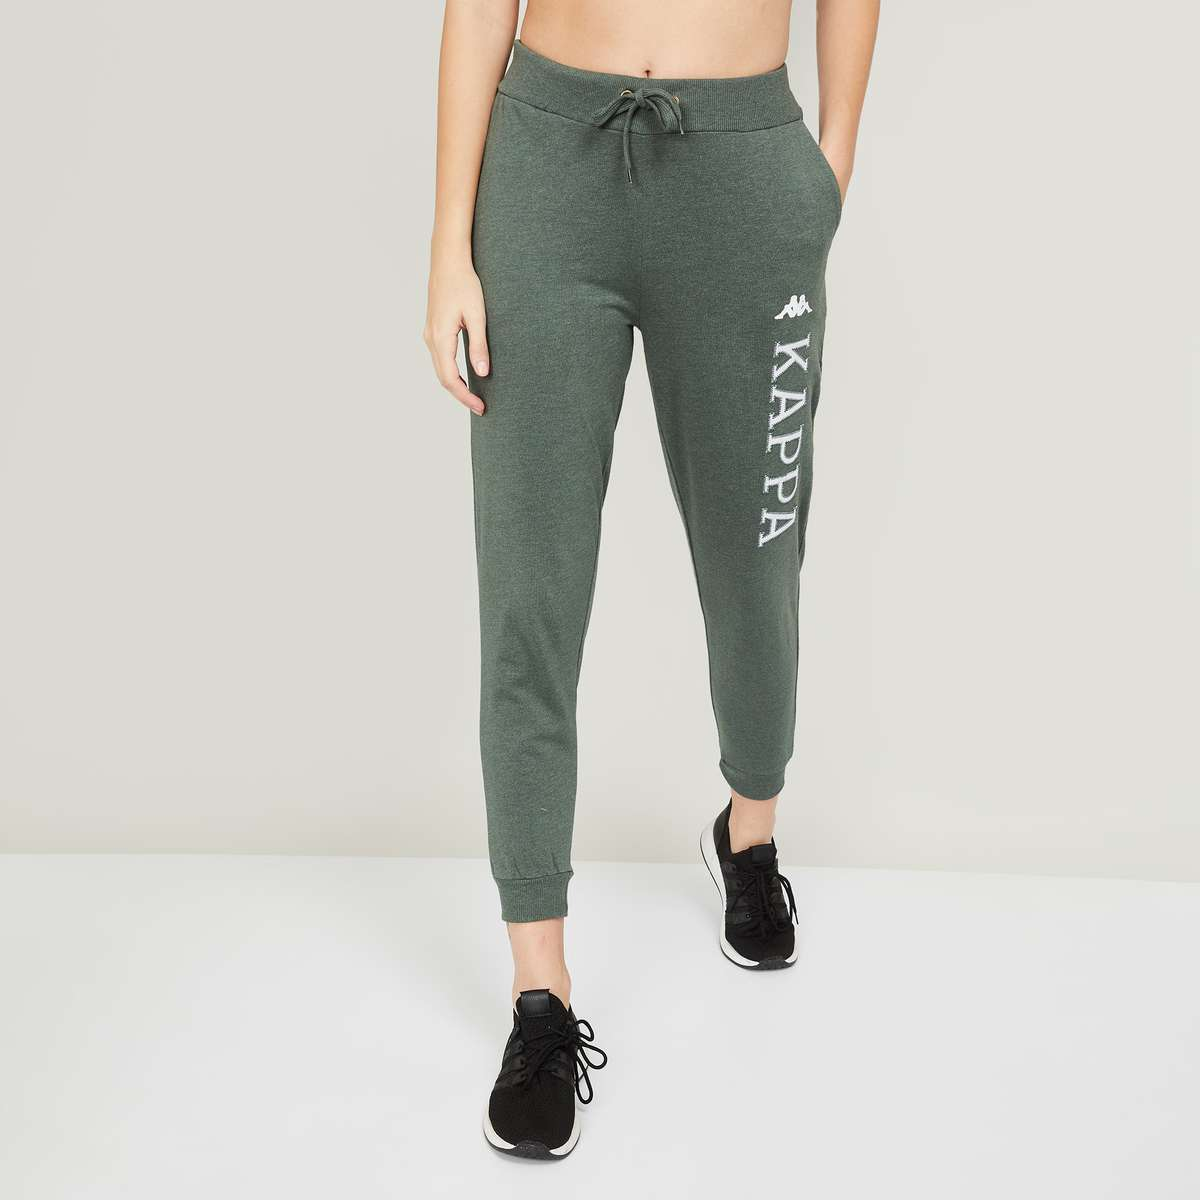 1.KAPPA Women Embroidered Joggers